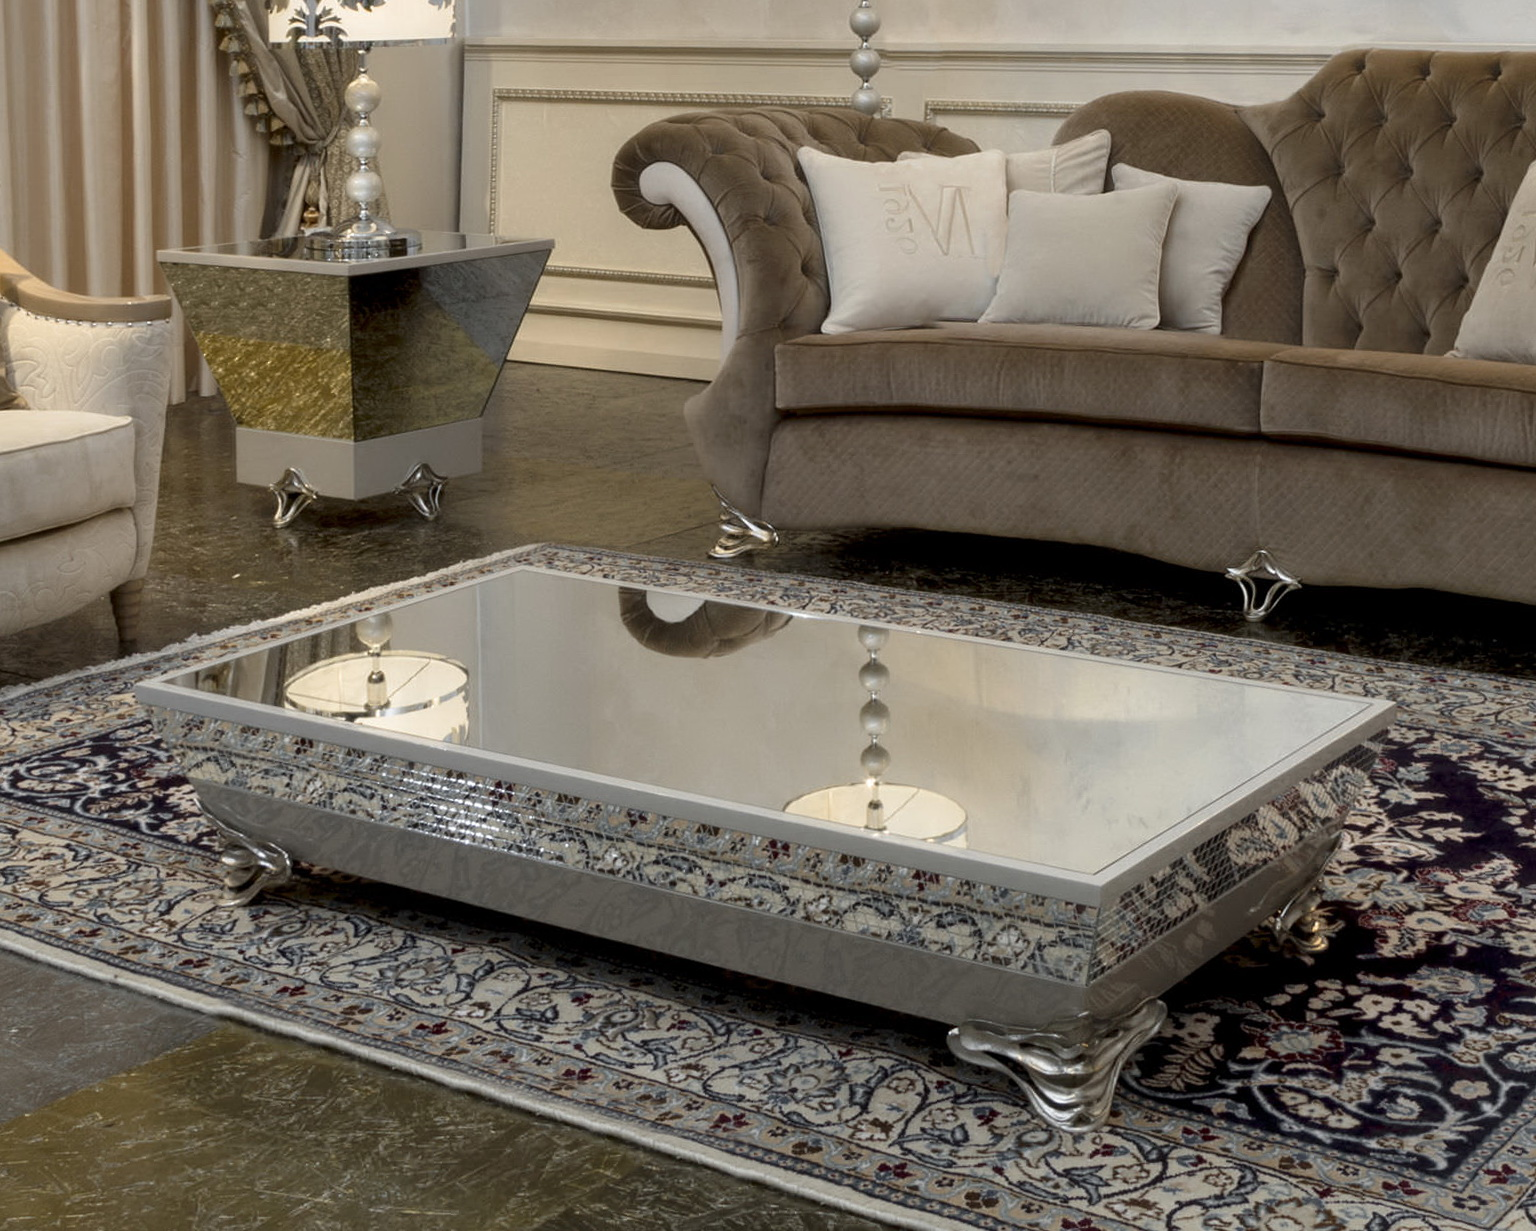 Mirrored Coffee Table | Mirrored End Tables | Mirror Coffee Tables